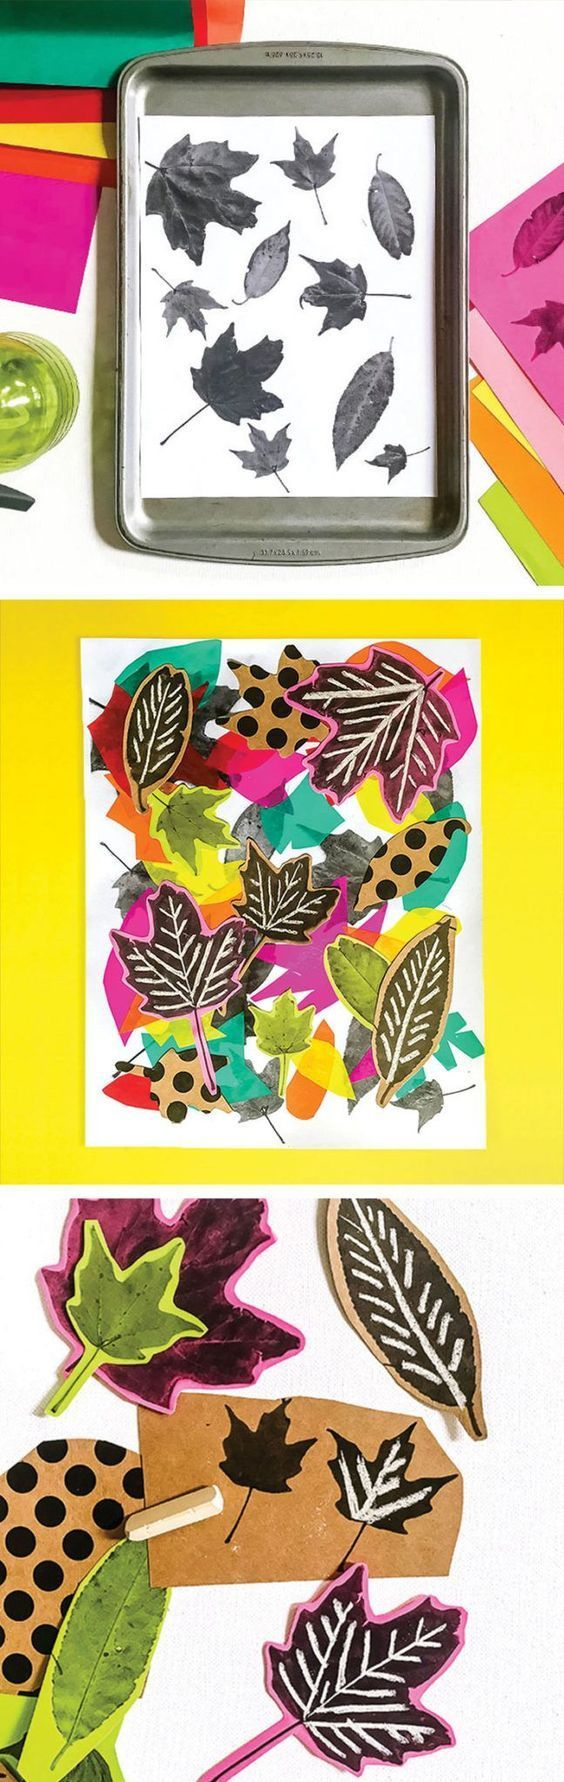 This leaf art collage craft is the perfect combination of fall fun and creative learning for kids!